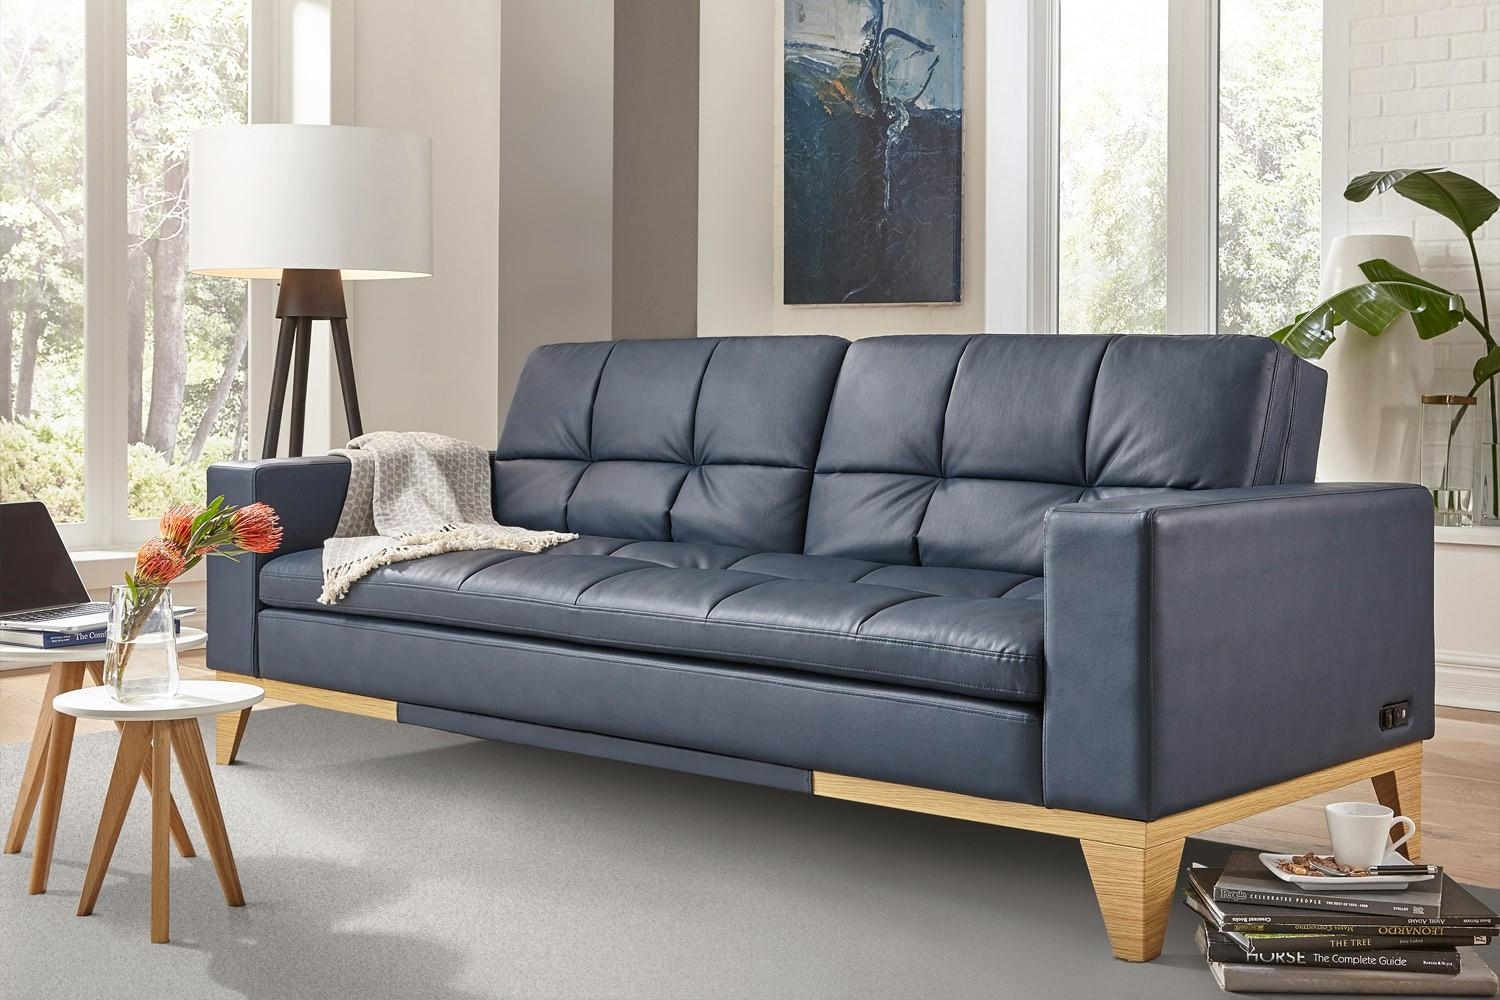 Convertible Sofa Bed | Relaxalounger Futon | The Futon Shop With Bonded Leather Sofas (View 14 of 20)